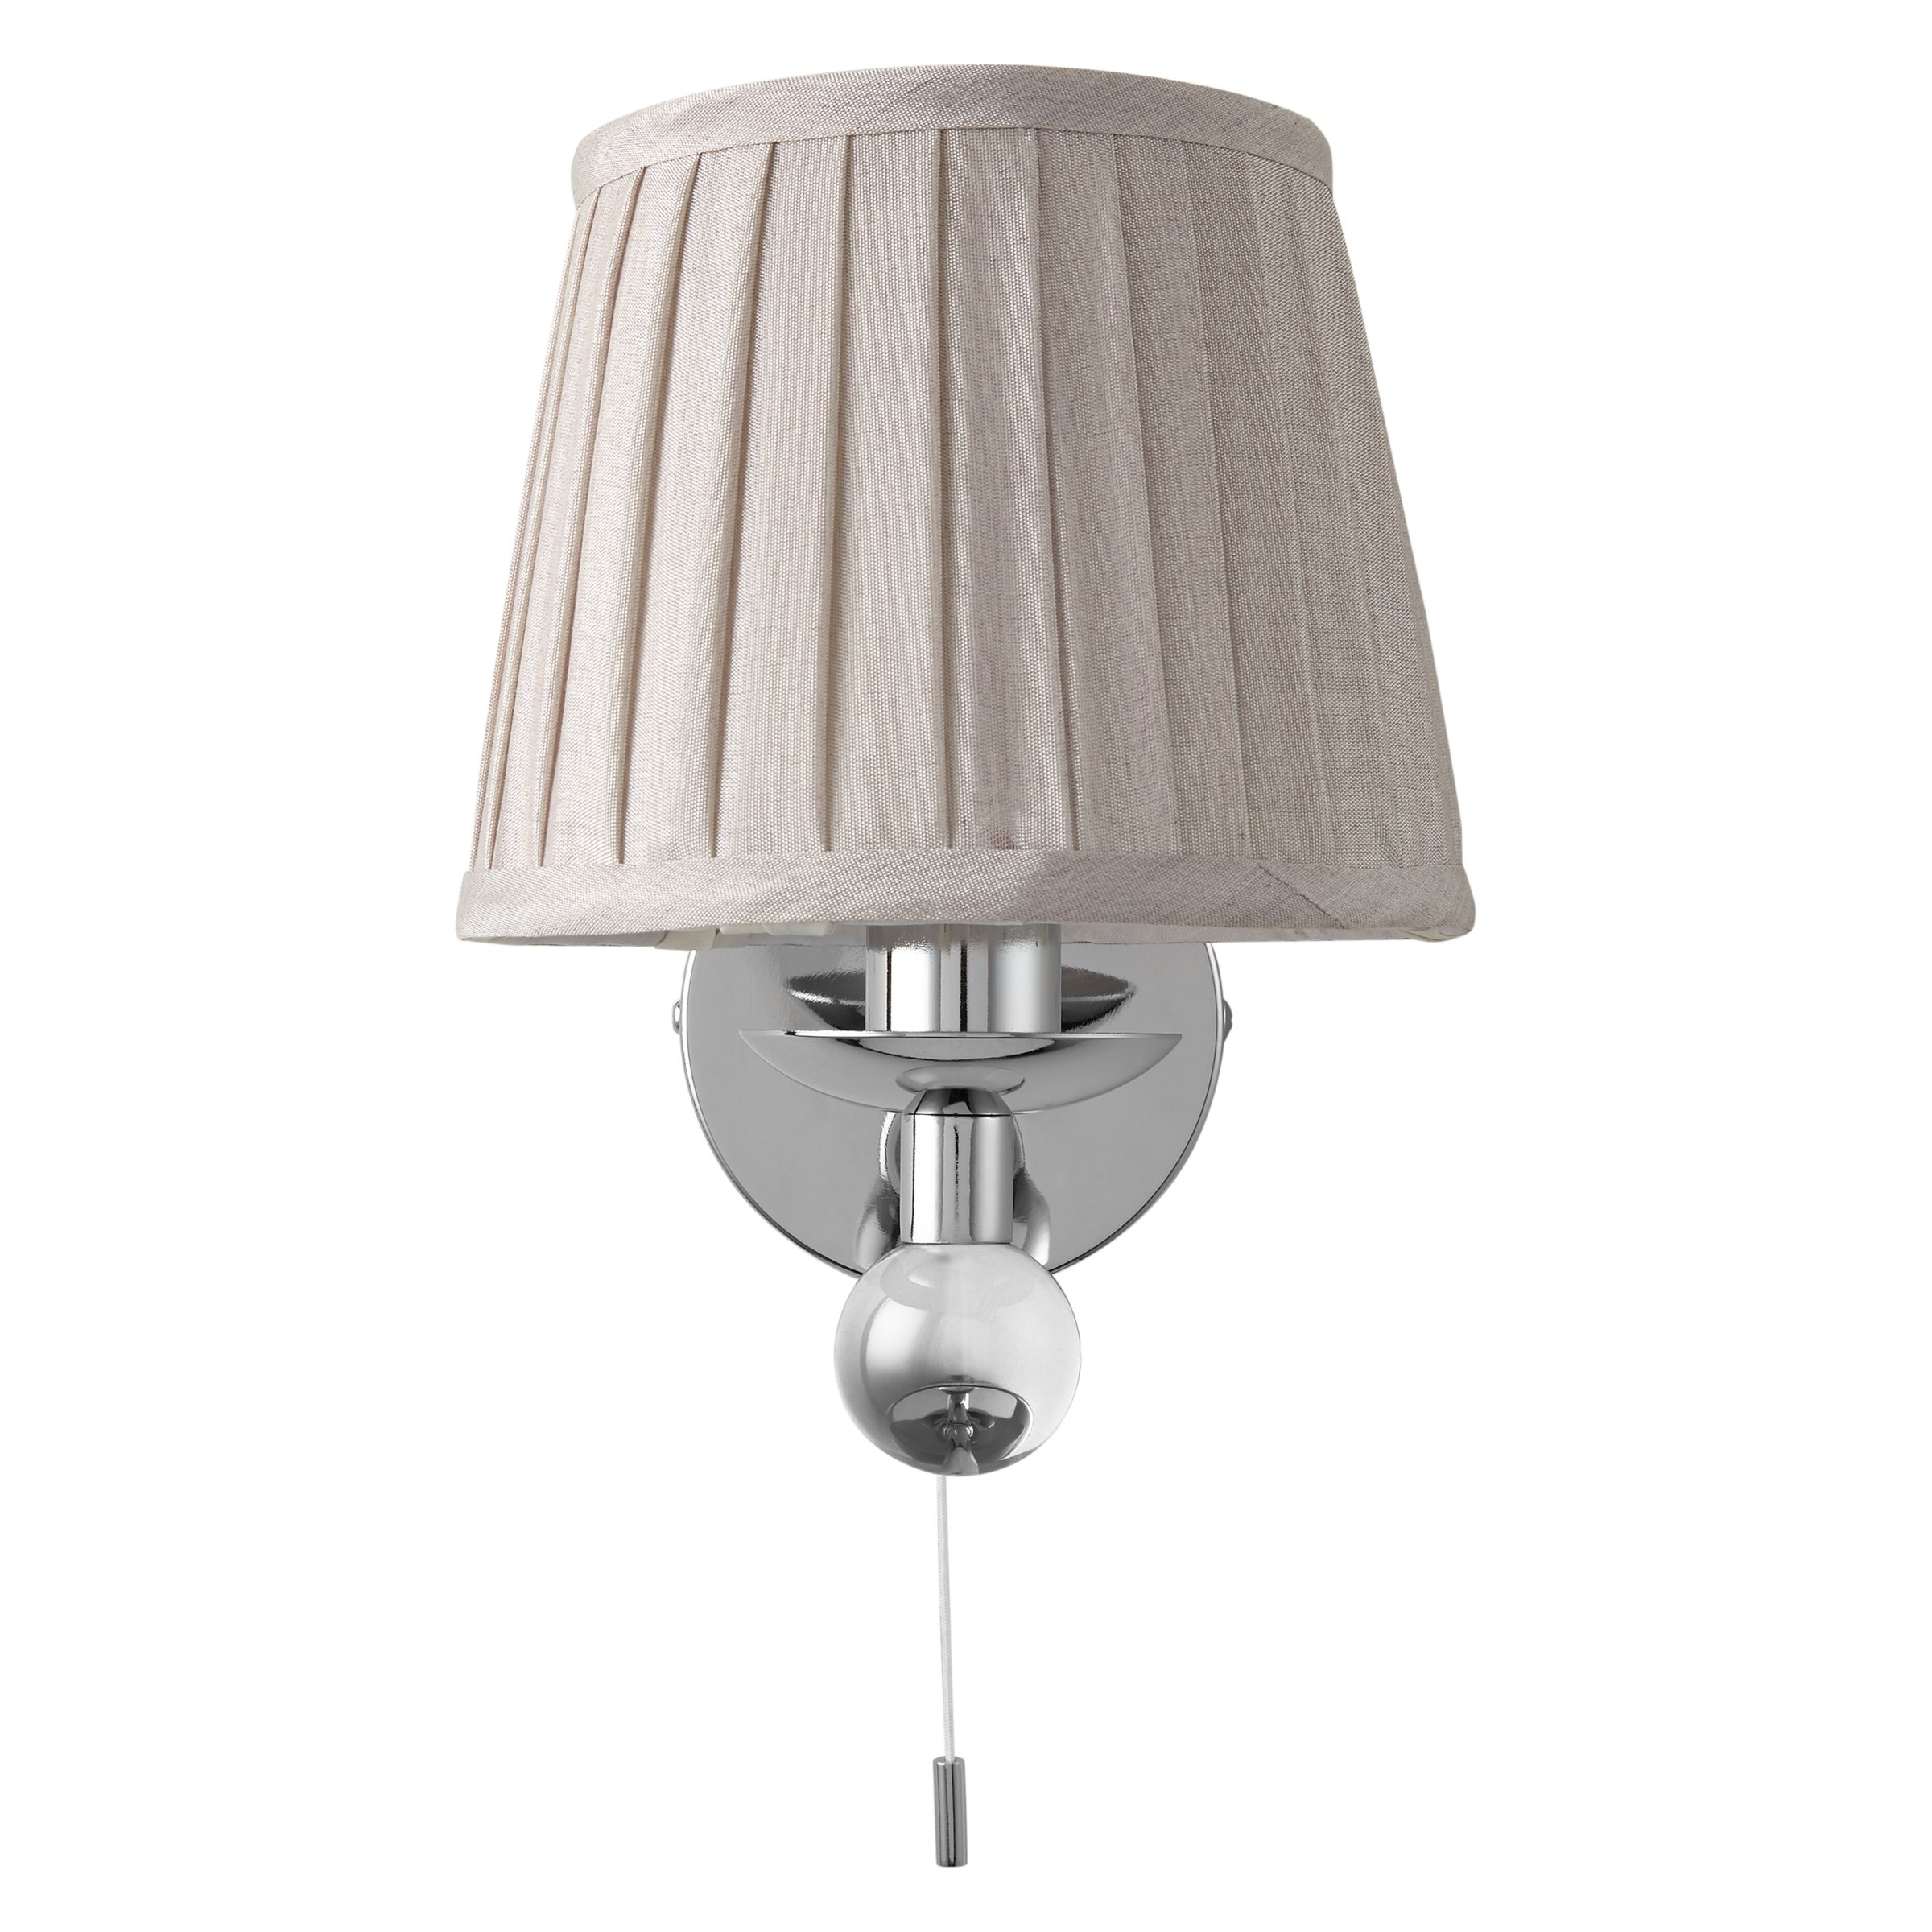 Buy John Lewis Lavinia Wall Light with Shade John Lewis